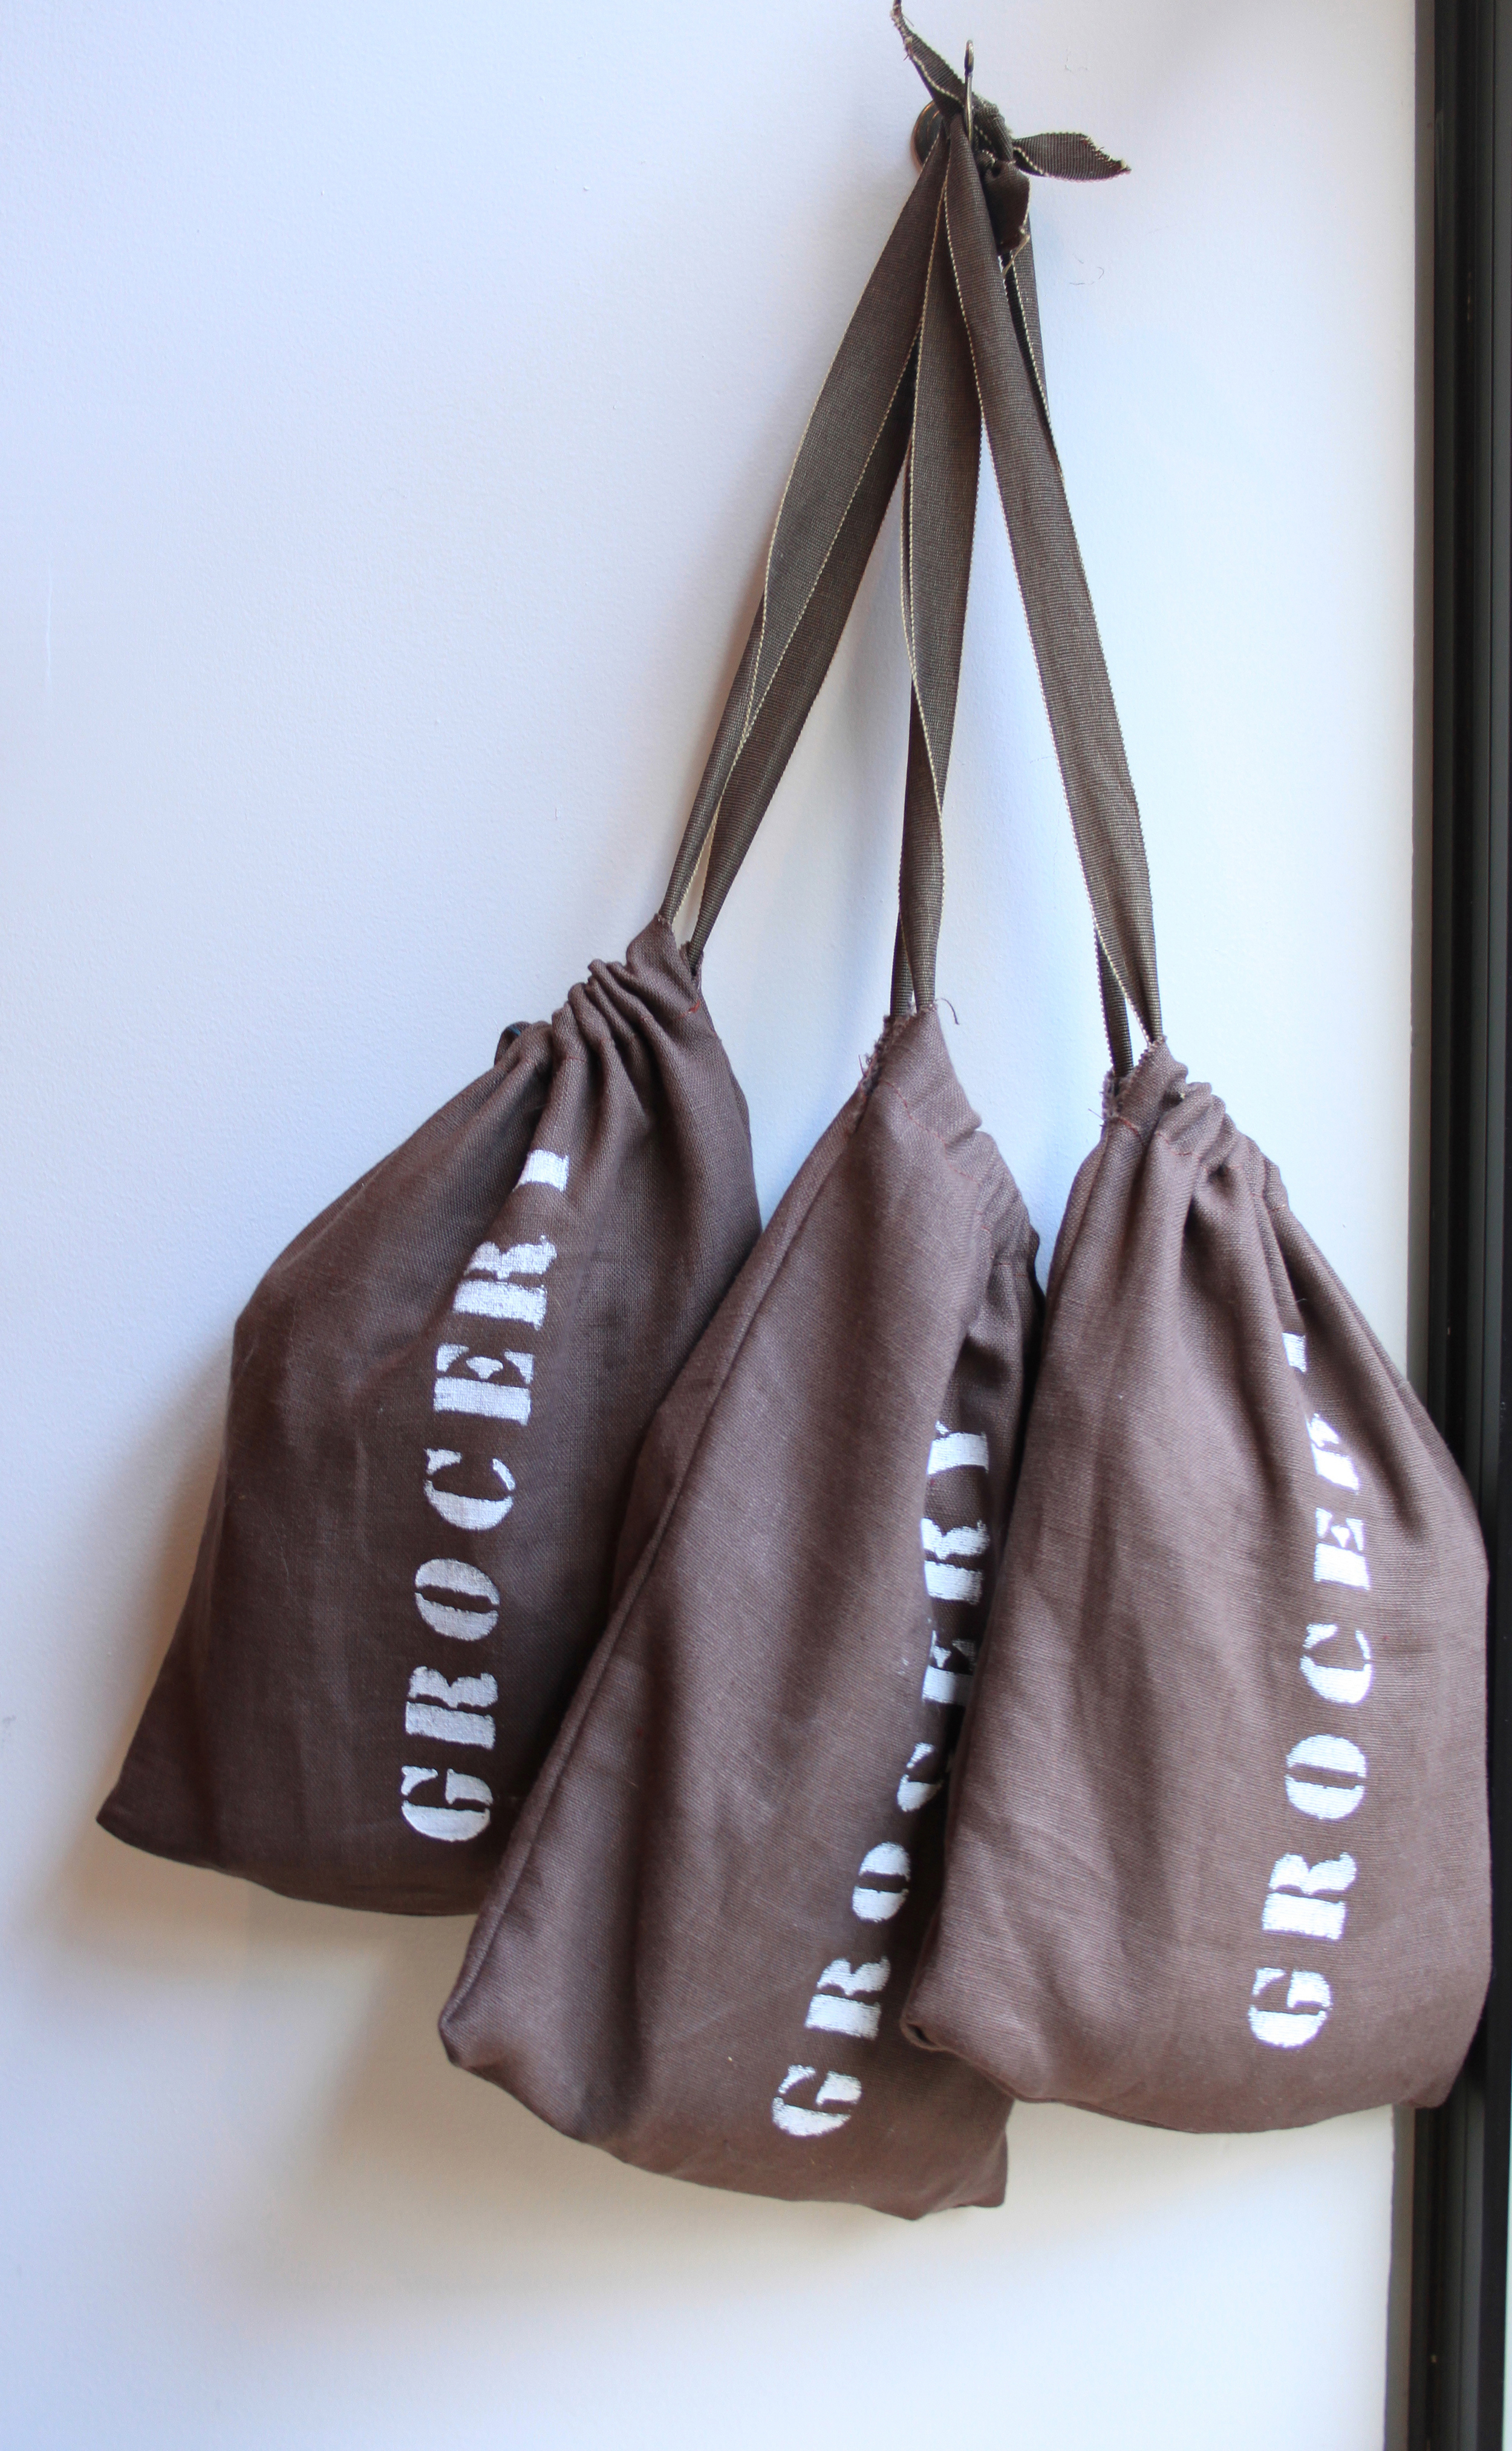 How to make a bag from a pillowcase